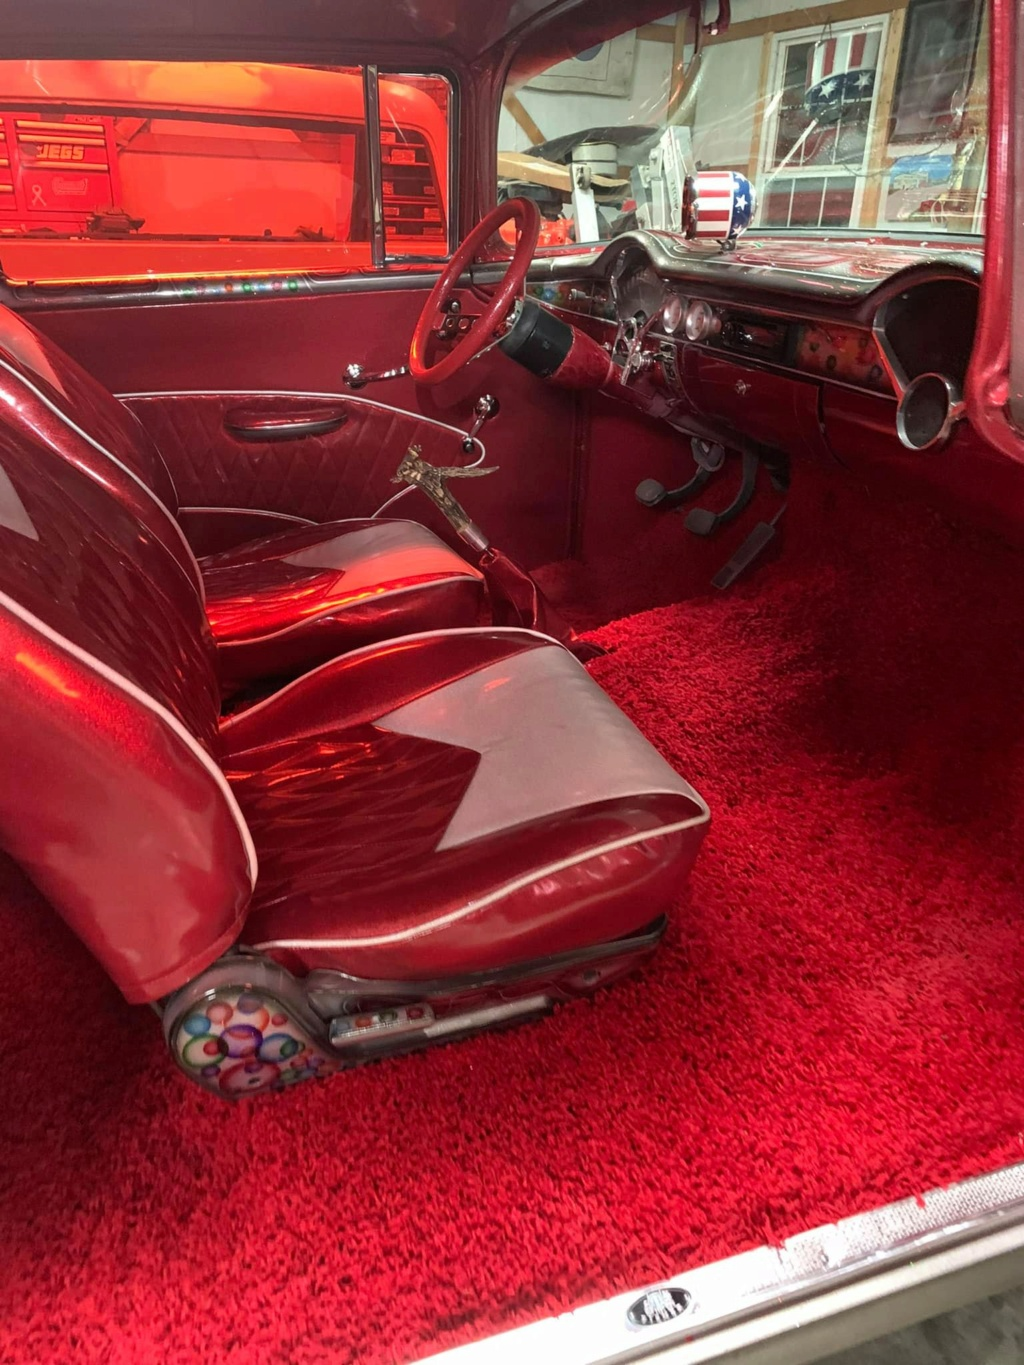 Ronnie N Kristina Jones - 1955 Chevrolet Gasser sixties look with flake, panneling, lace painting 15765010